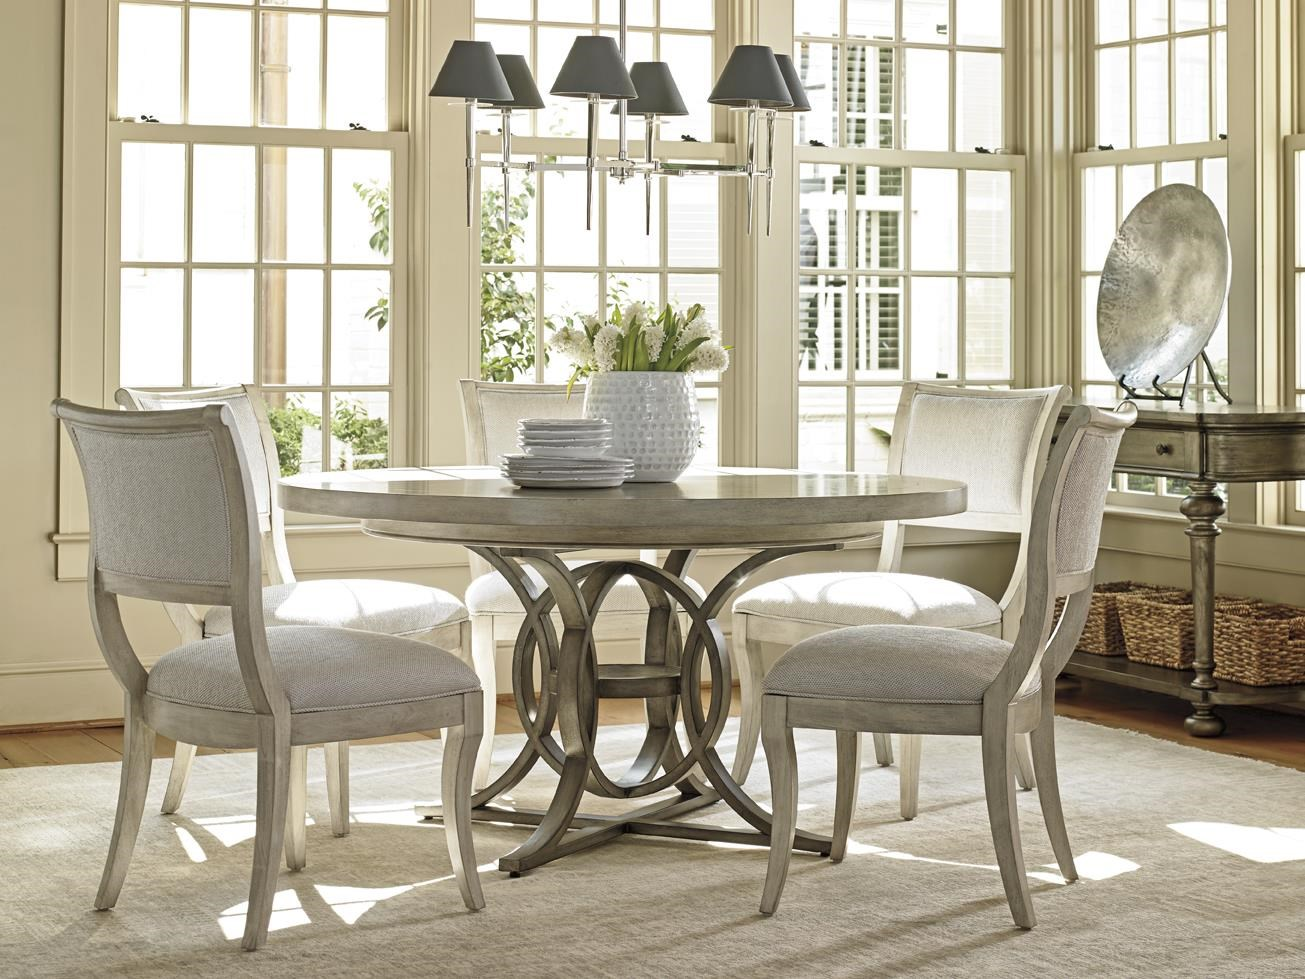 Delightful ... Lexington Oyster BayCALERTON ROUND DINING TABLE ...